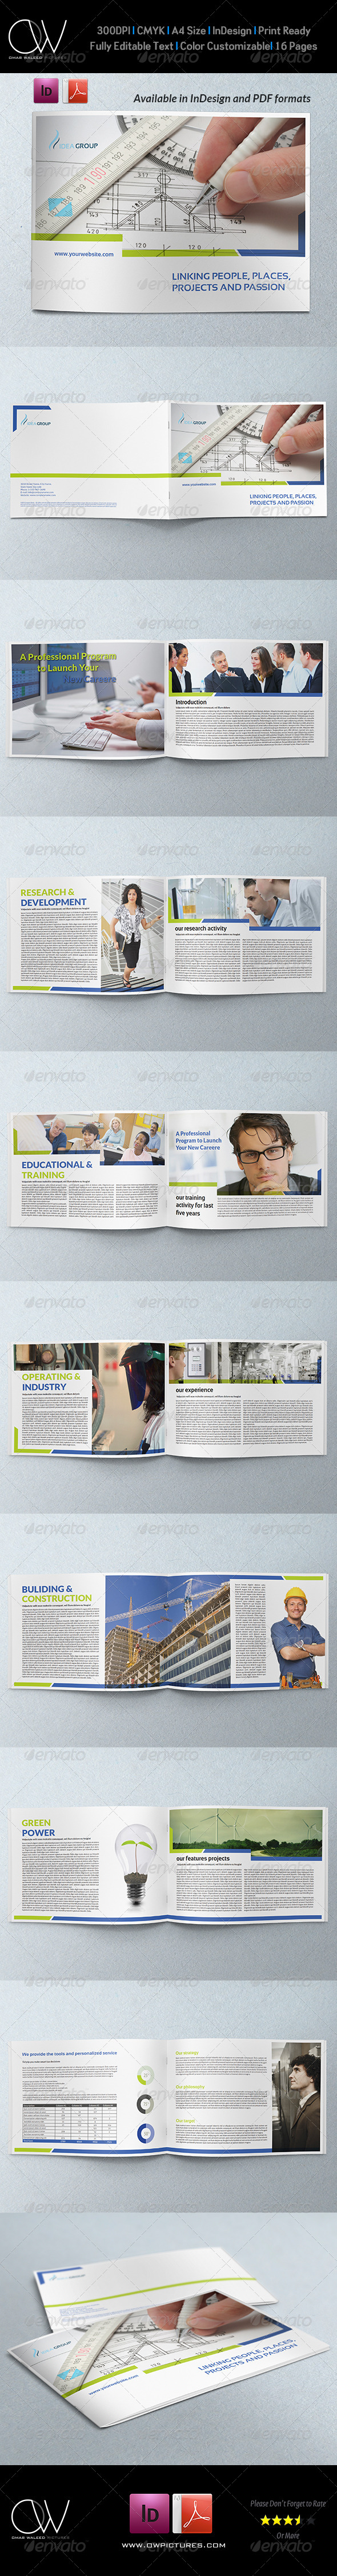 GraphicRiver Corporate Brochure Template Vol.25 16 Pages 6795014